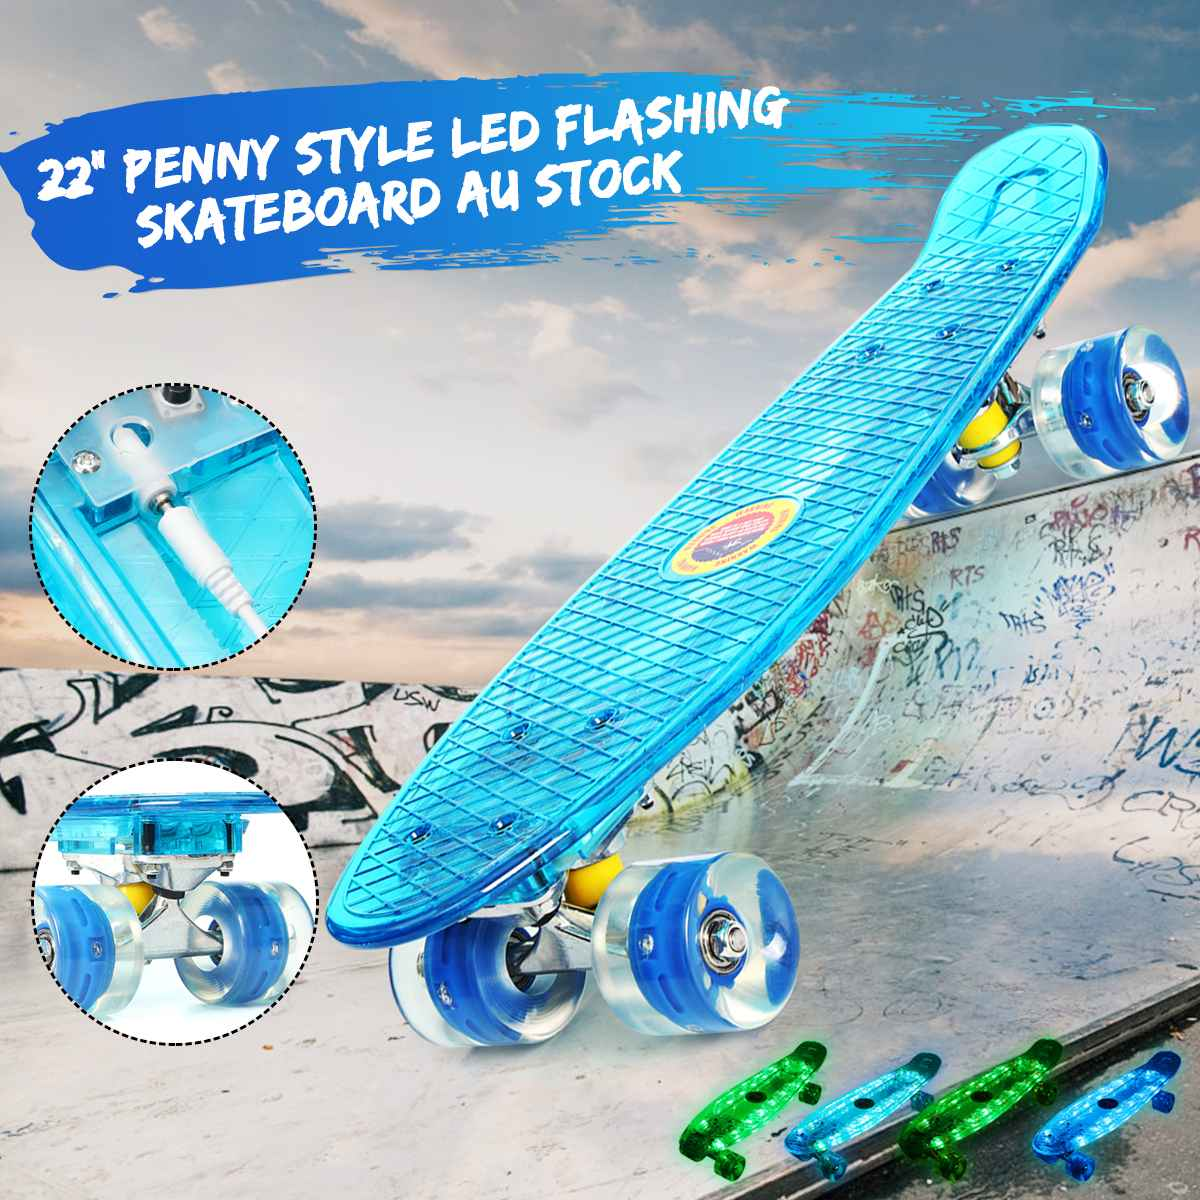 LED Penny Style Flashing Single Warped Four Wheel Skateboard Teenagers Kids Baby Happy Gift Shining Skateboard